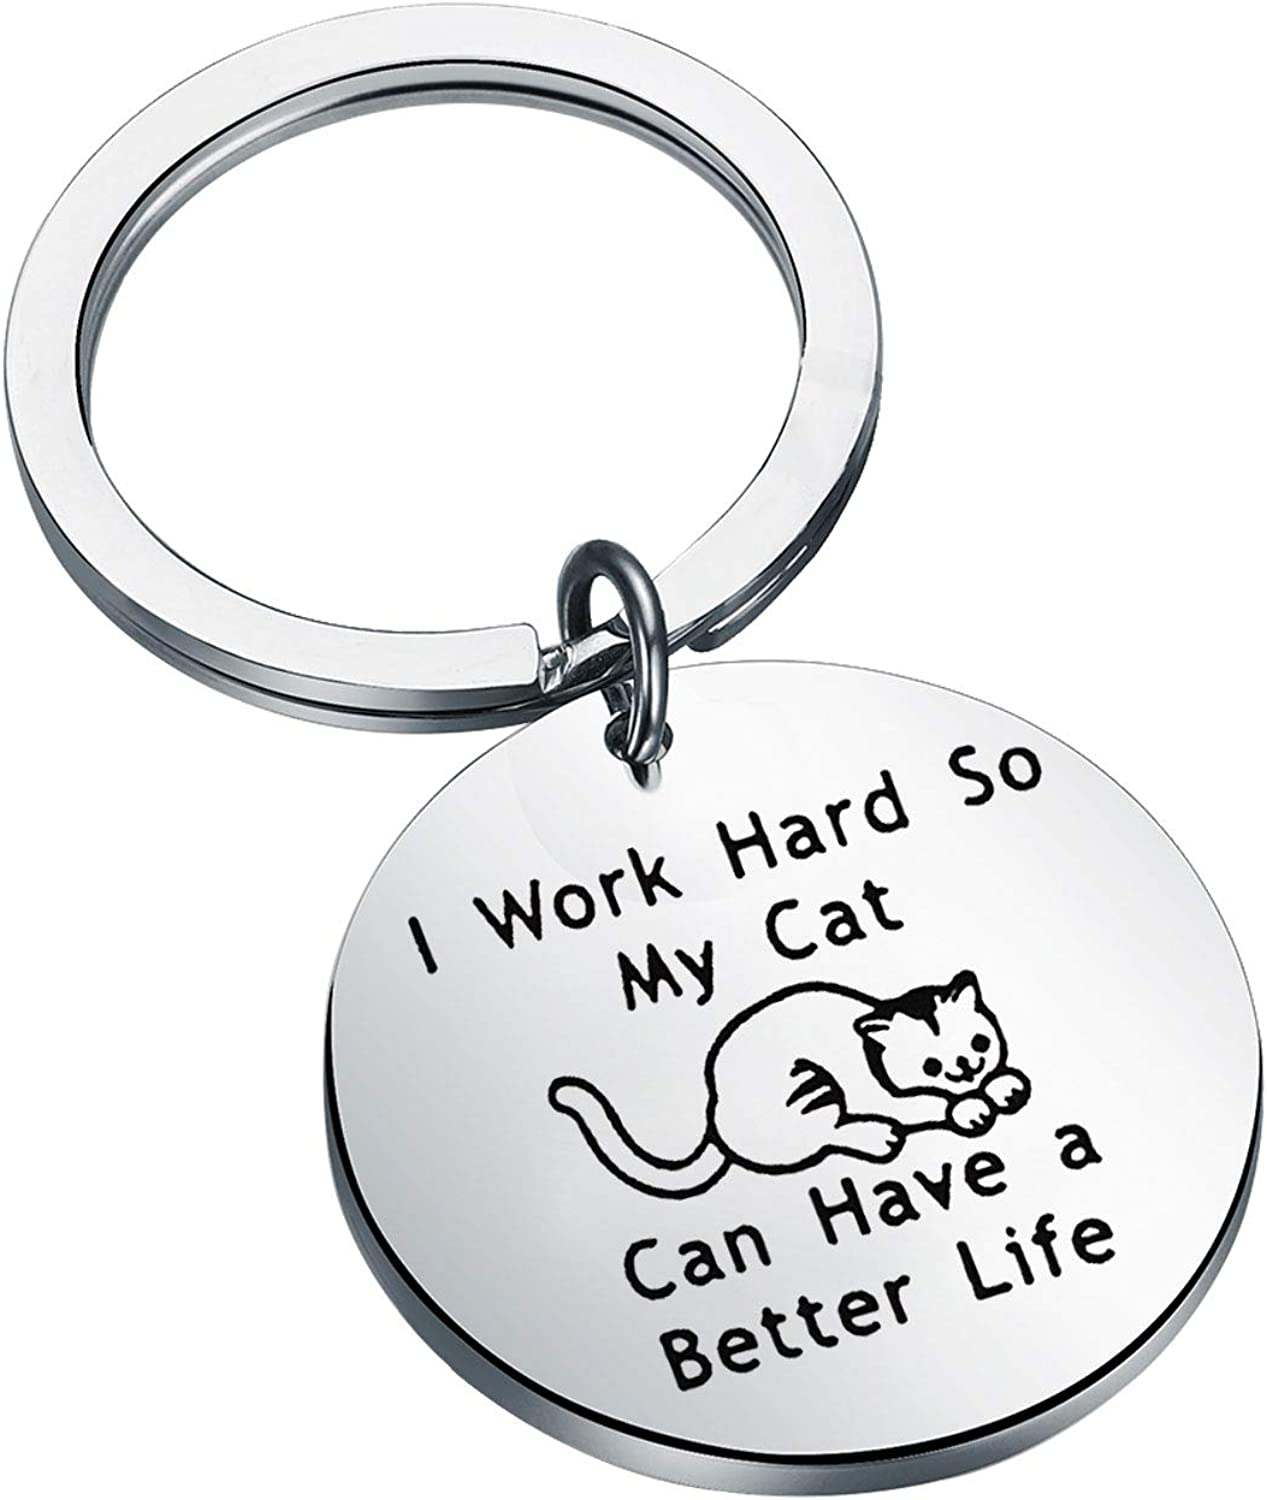 LQRI Cat Lover Gifts I Work unisex Hard Have shop Lif A So Better My Can